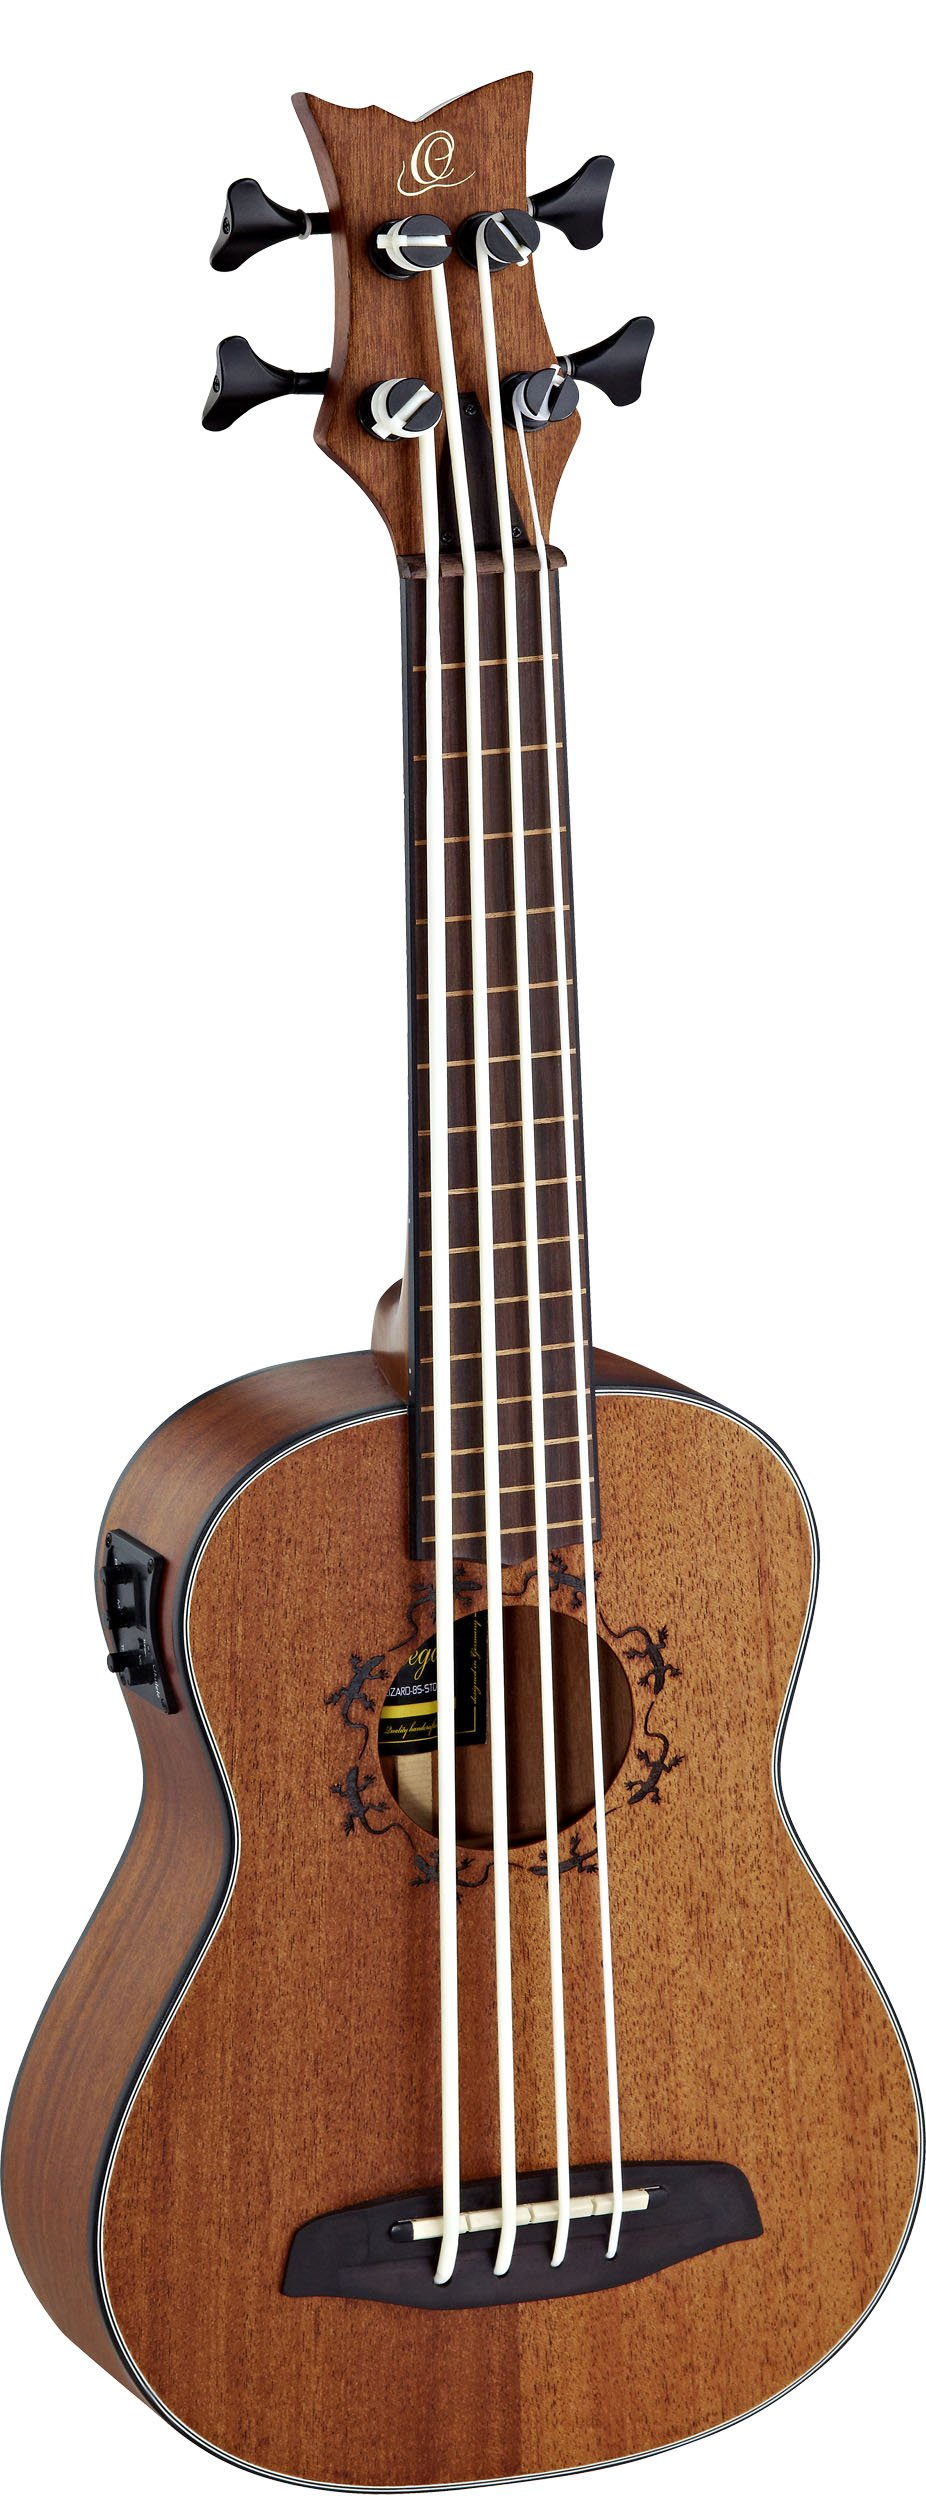 Ortega Guitars LIZZY-BSFL-GB Lizard Series Lined Fretless Uke Bass with Mahogany Top and Body, Stain Finish